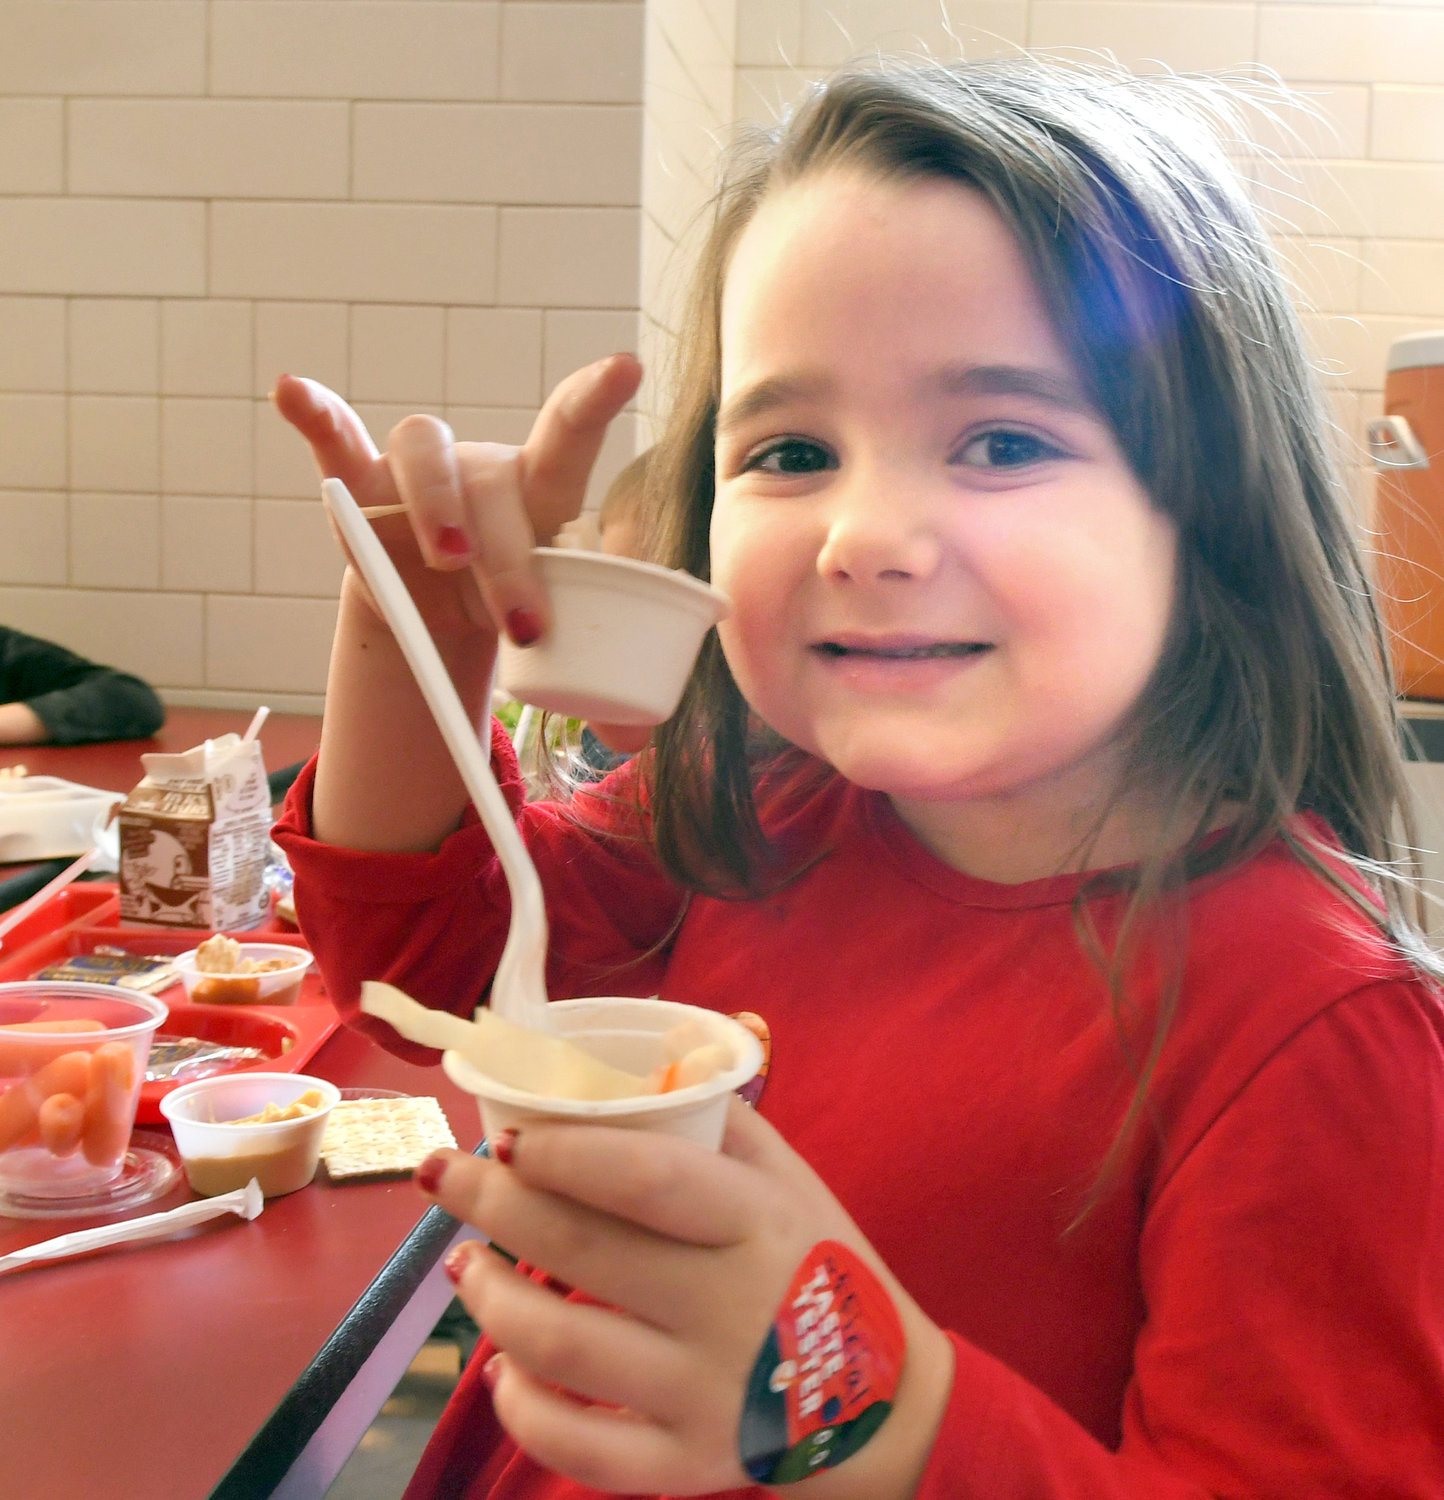 THIS IS GOOD — Clinton Elementary School kindergartener Alexandra Blum holds up the delicious Asian Cabbage Slaw that she tried during lunch on Dec. 18 as part of the Harvest of the Month program that's part of the Farm to School initiative.